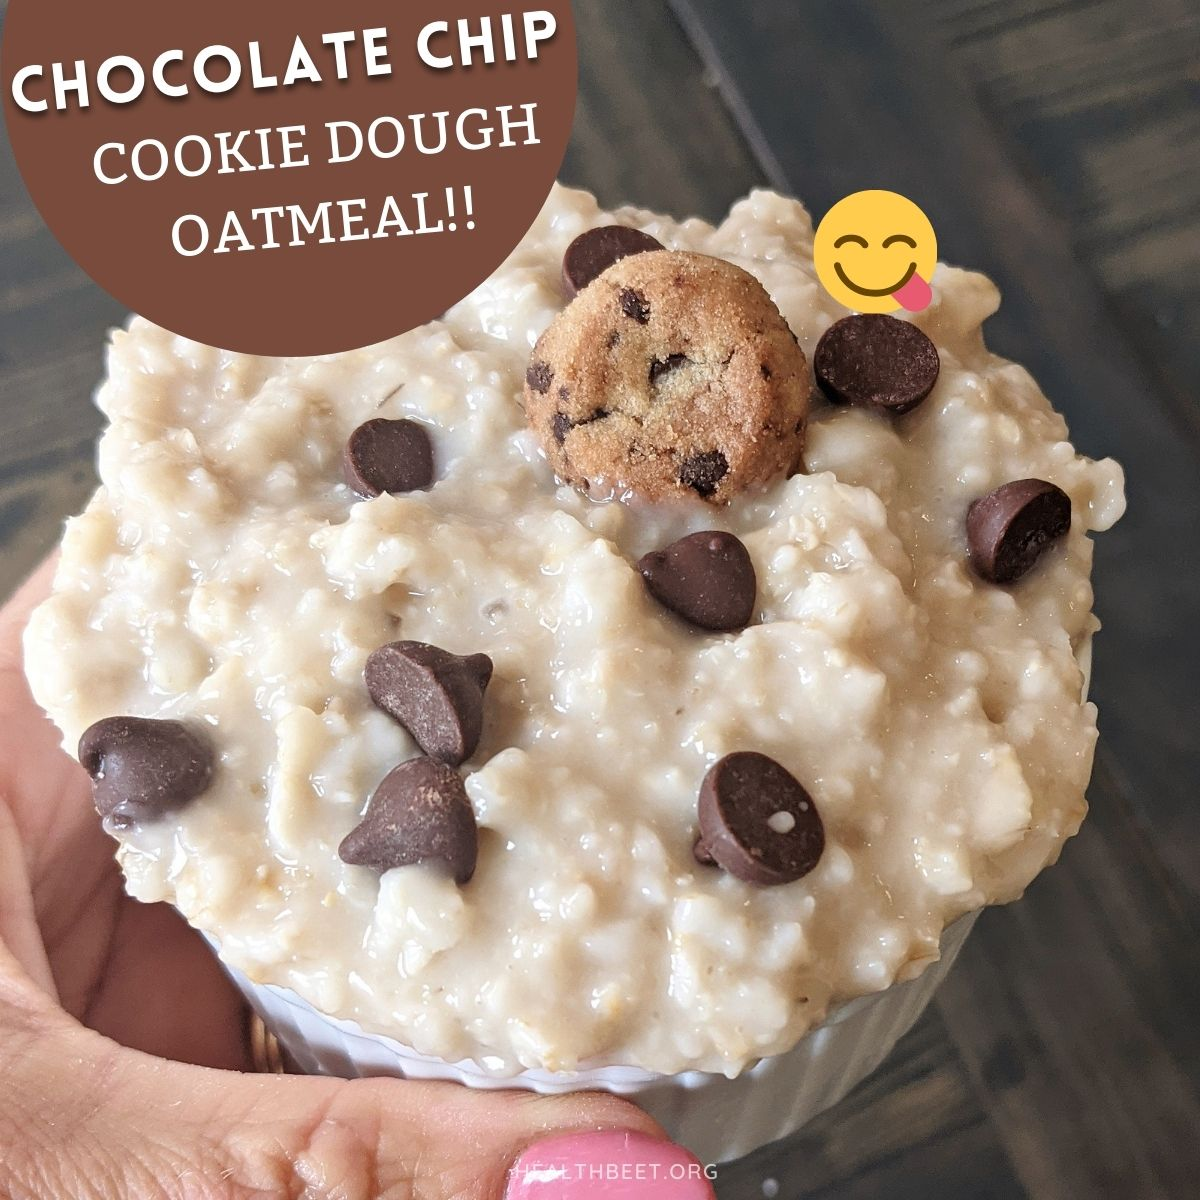 Healthy breakfast chocolate chip cookie dough